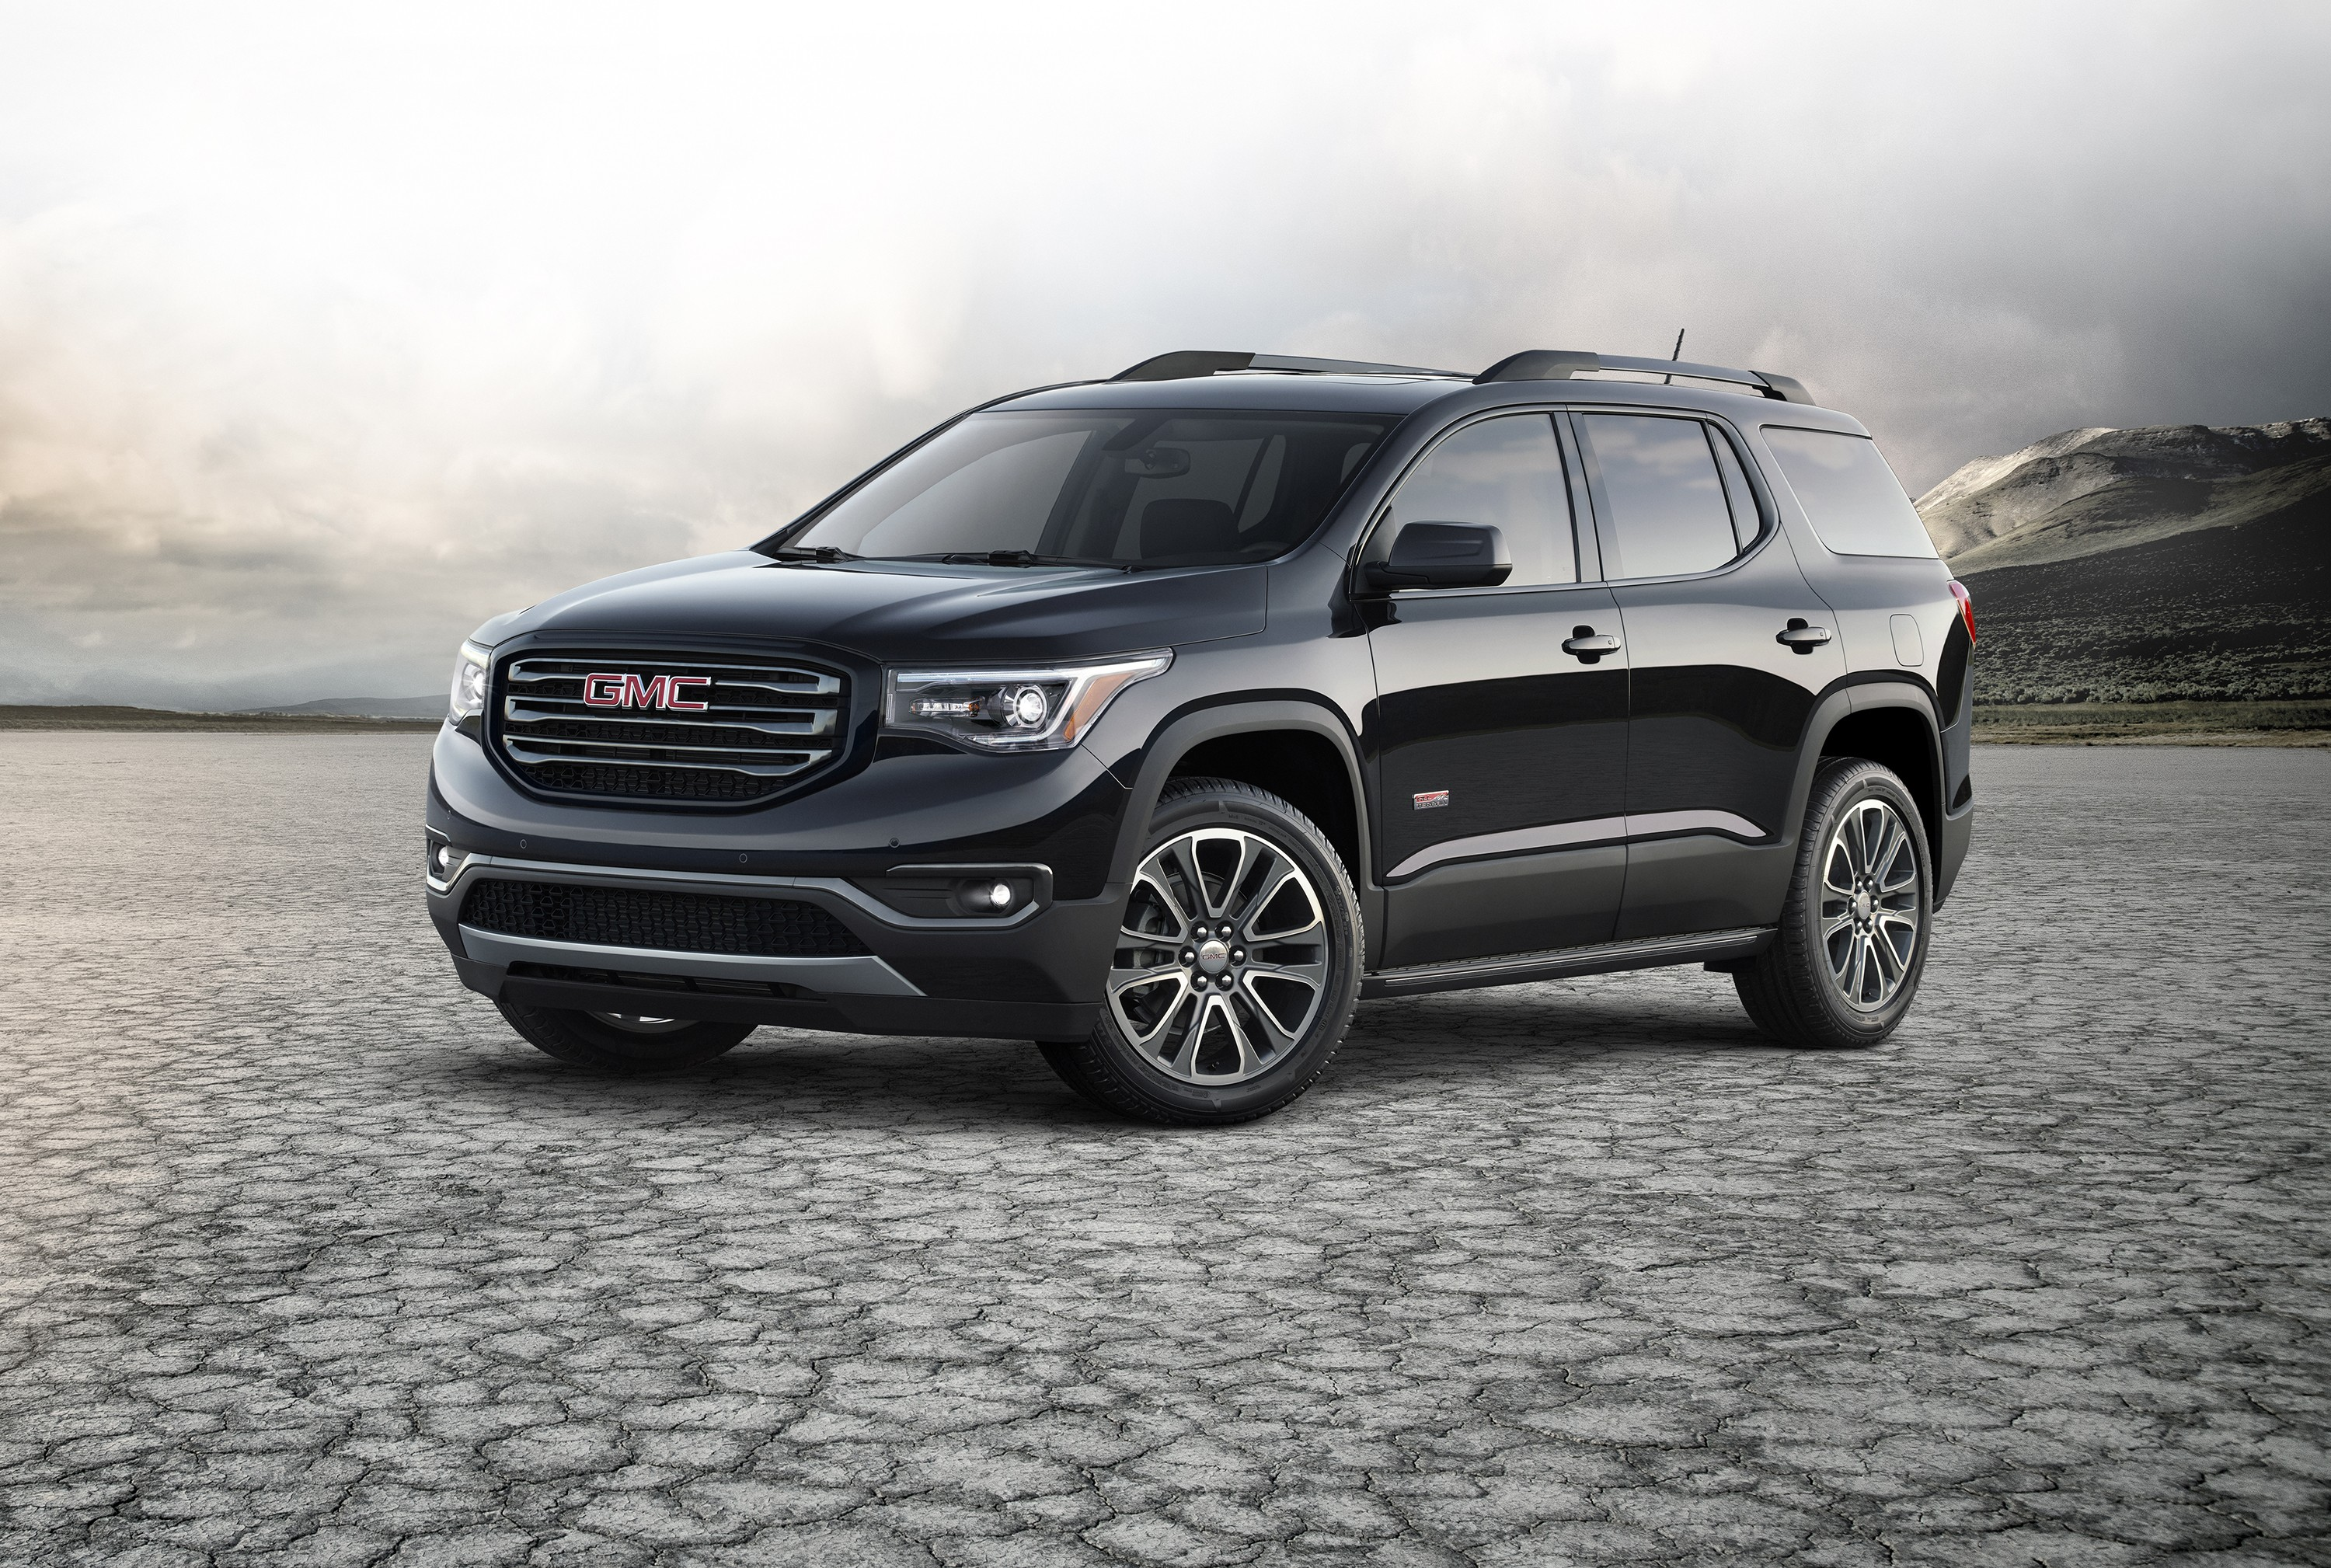 And this gets us to the changes gmc operated for the 2018 model year first and foremost say goodbye to two exterior colors dark sapphire blue metallic